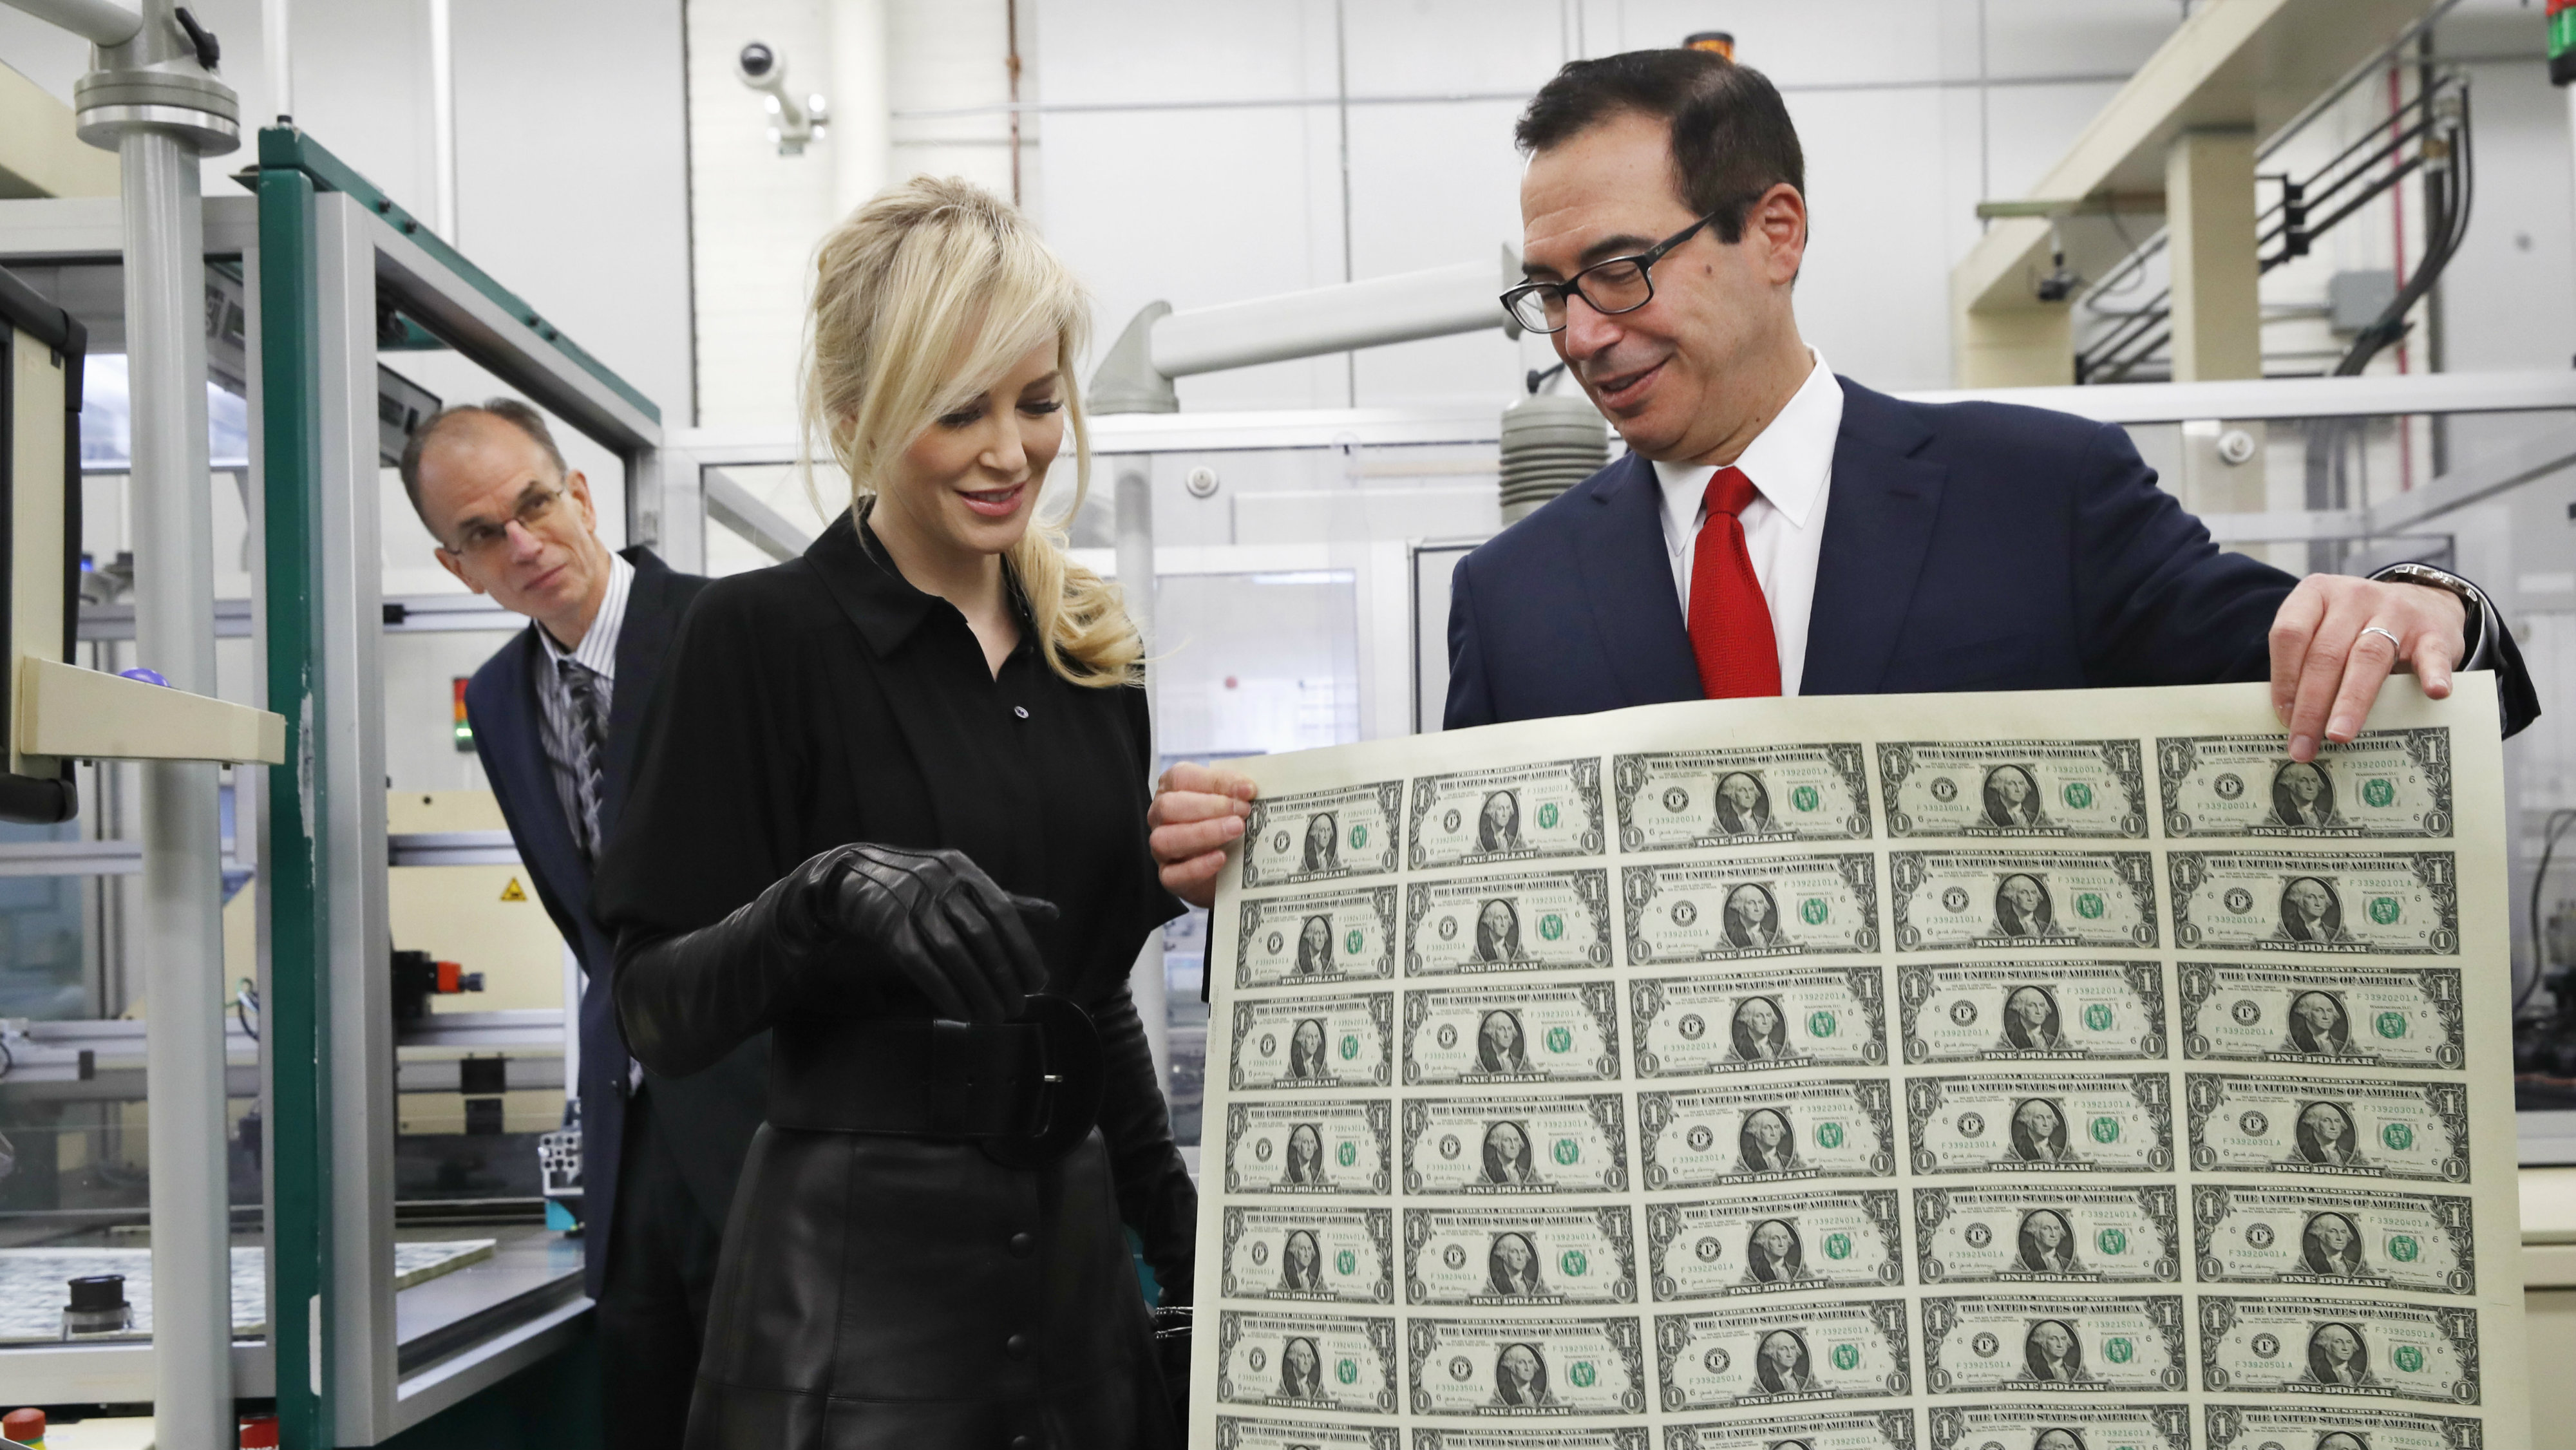 Treasury Secretary Steven Mnuchin, right, shows his wife Louise Linton a sheet of new $1 bills